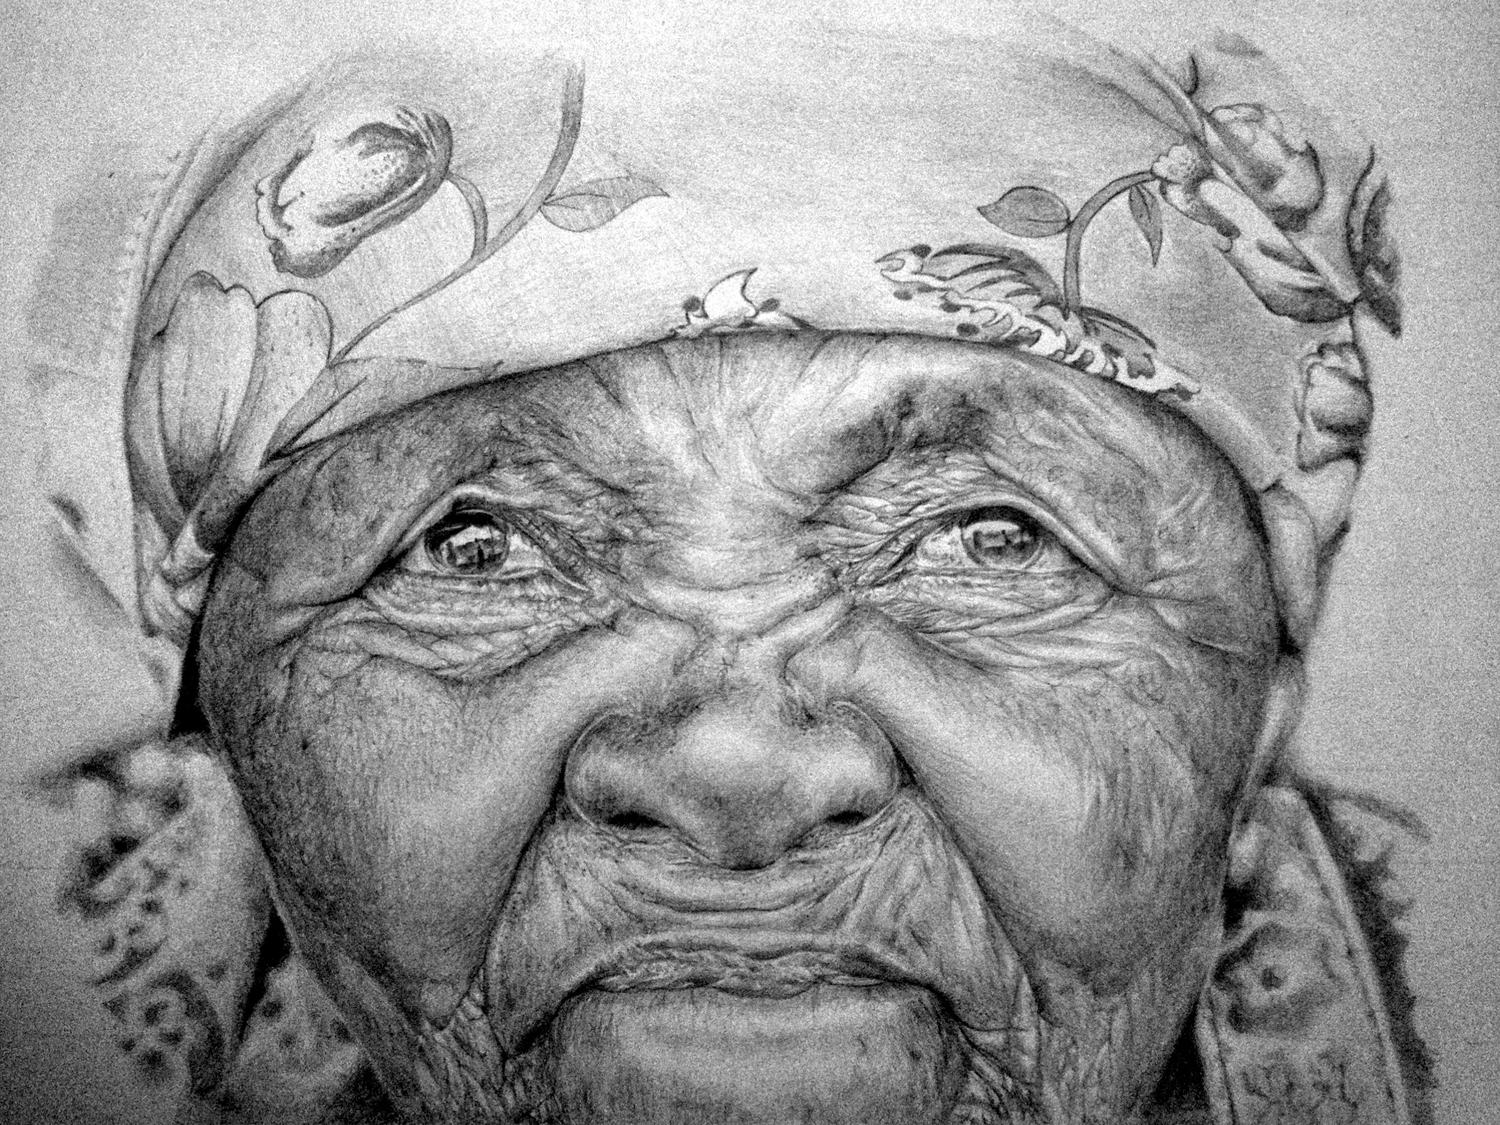 Pencil sketch artist near me